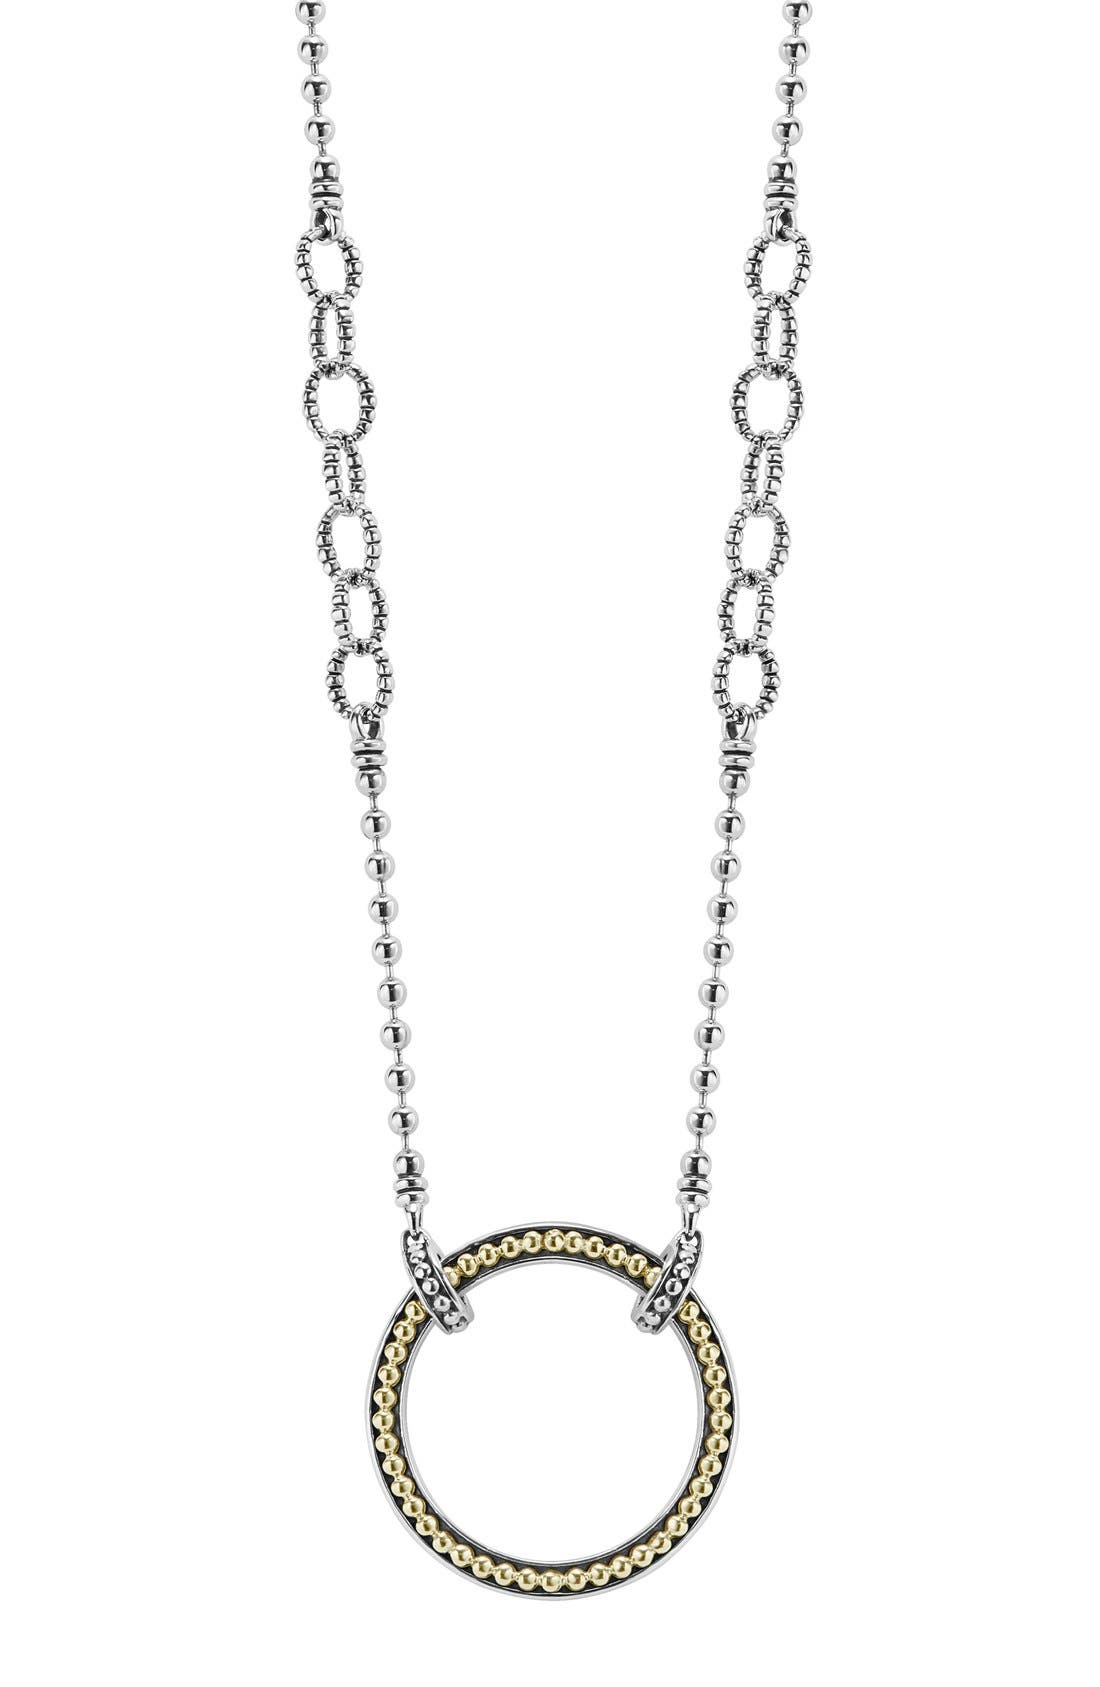 Enso Pendant Necklace,                             Main thumbnail 1, color,                             SILVER/ GOLD